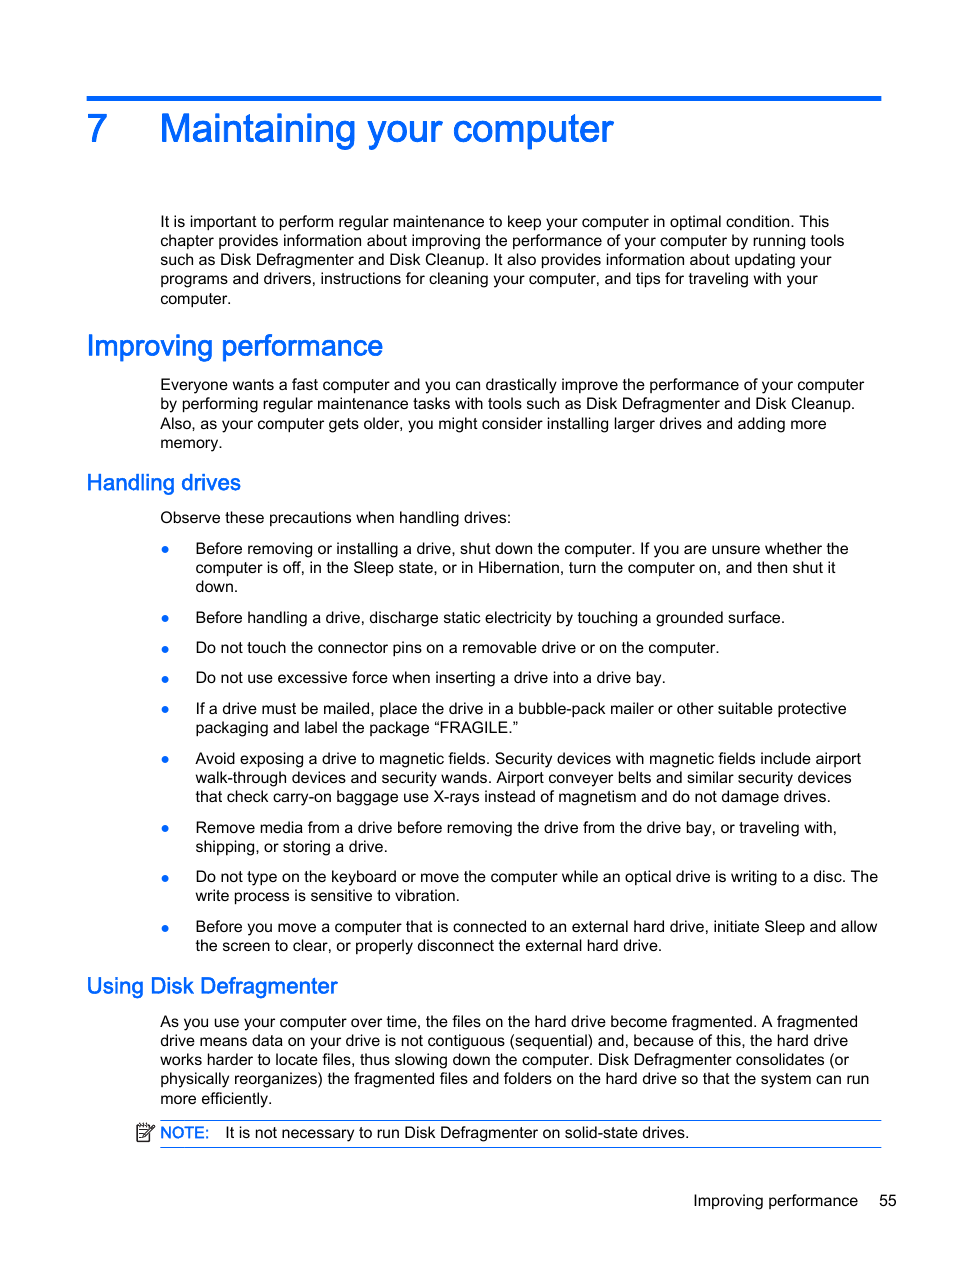 Maintaining your computer, Improving performance, Handling drives | HP  Pavilion 13-r010dx x2 Detachable PC User Manual | Page 65 / 84